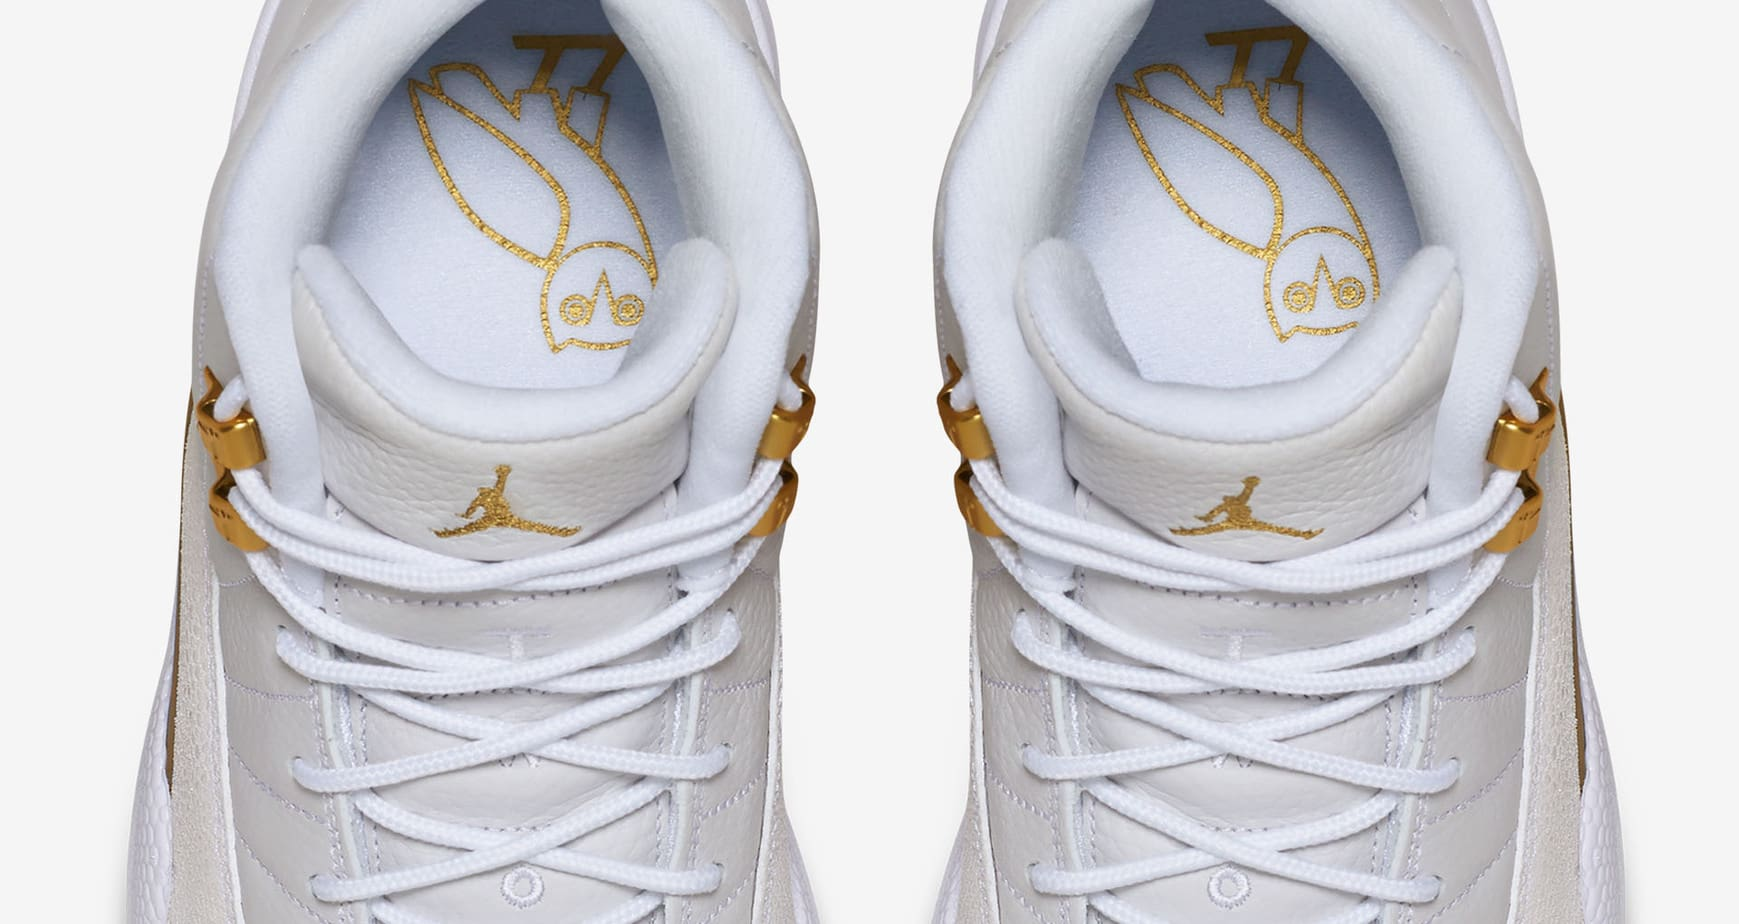 ee64803c584a Air Jordan 12 OVO  White Gold  2016 Release Date - JustFreshKicks